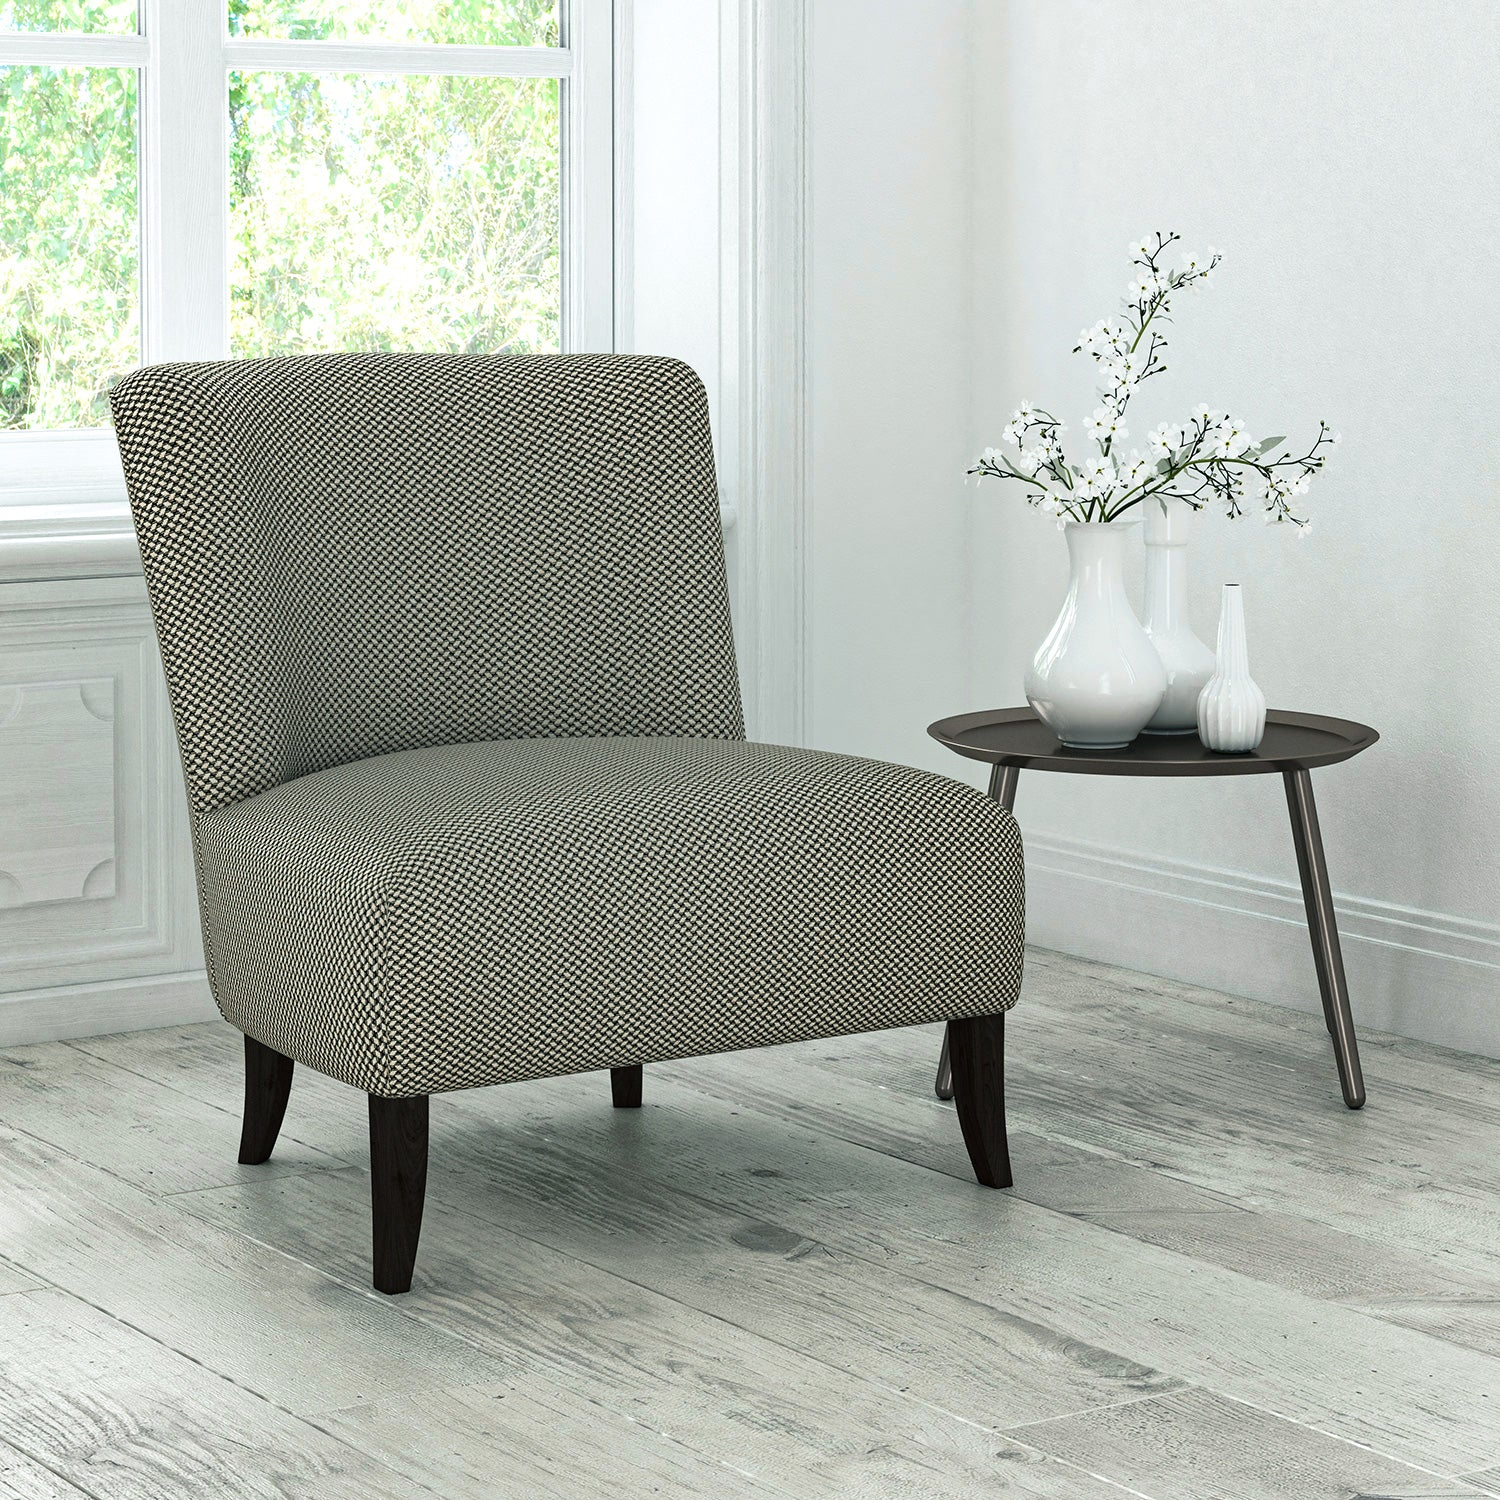 Chair upholstered in a dark grey stain resistant geometric weave fabric